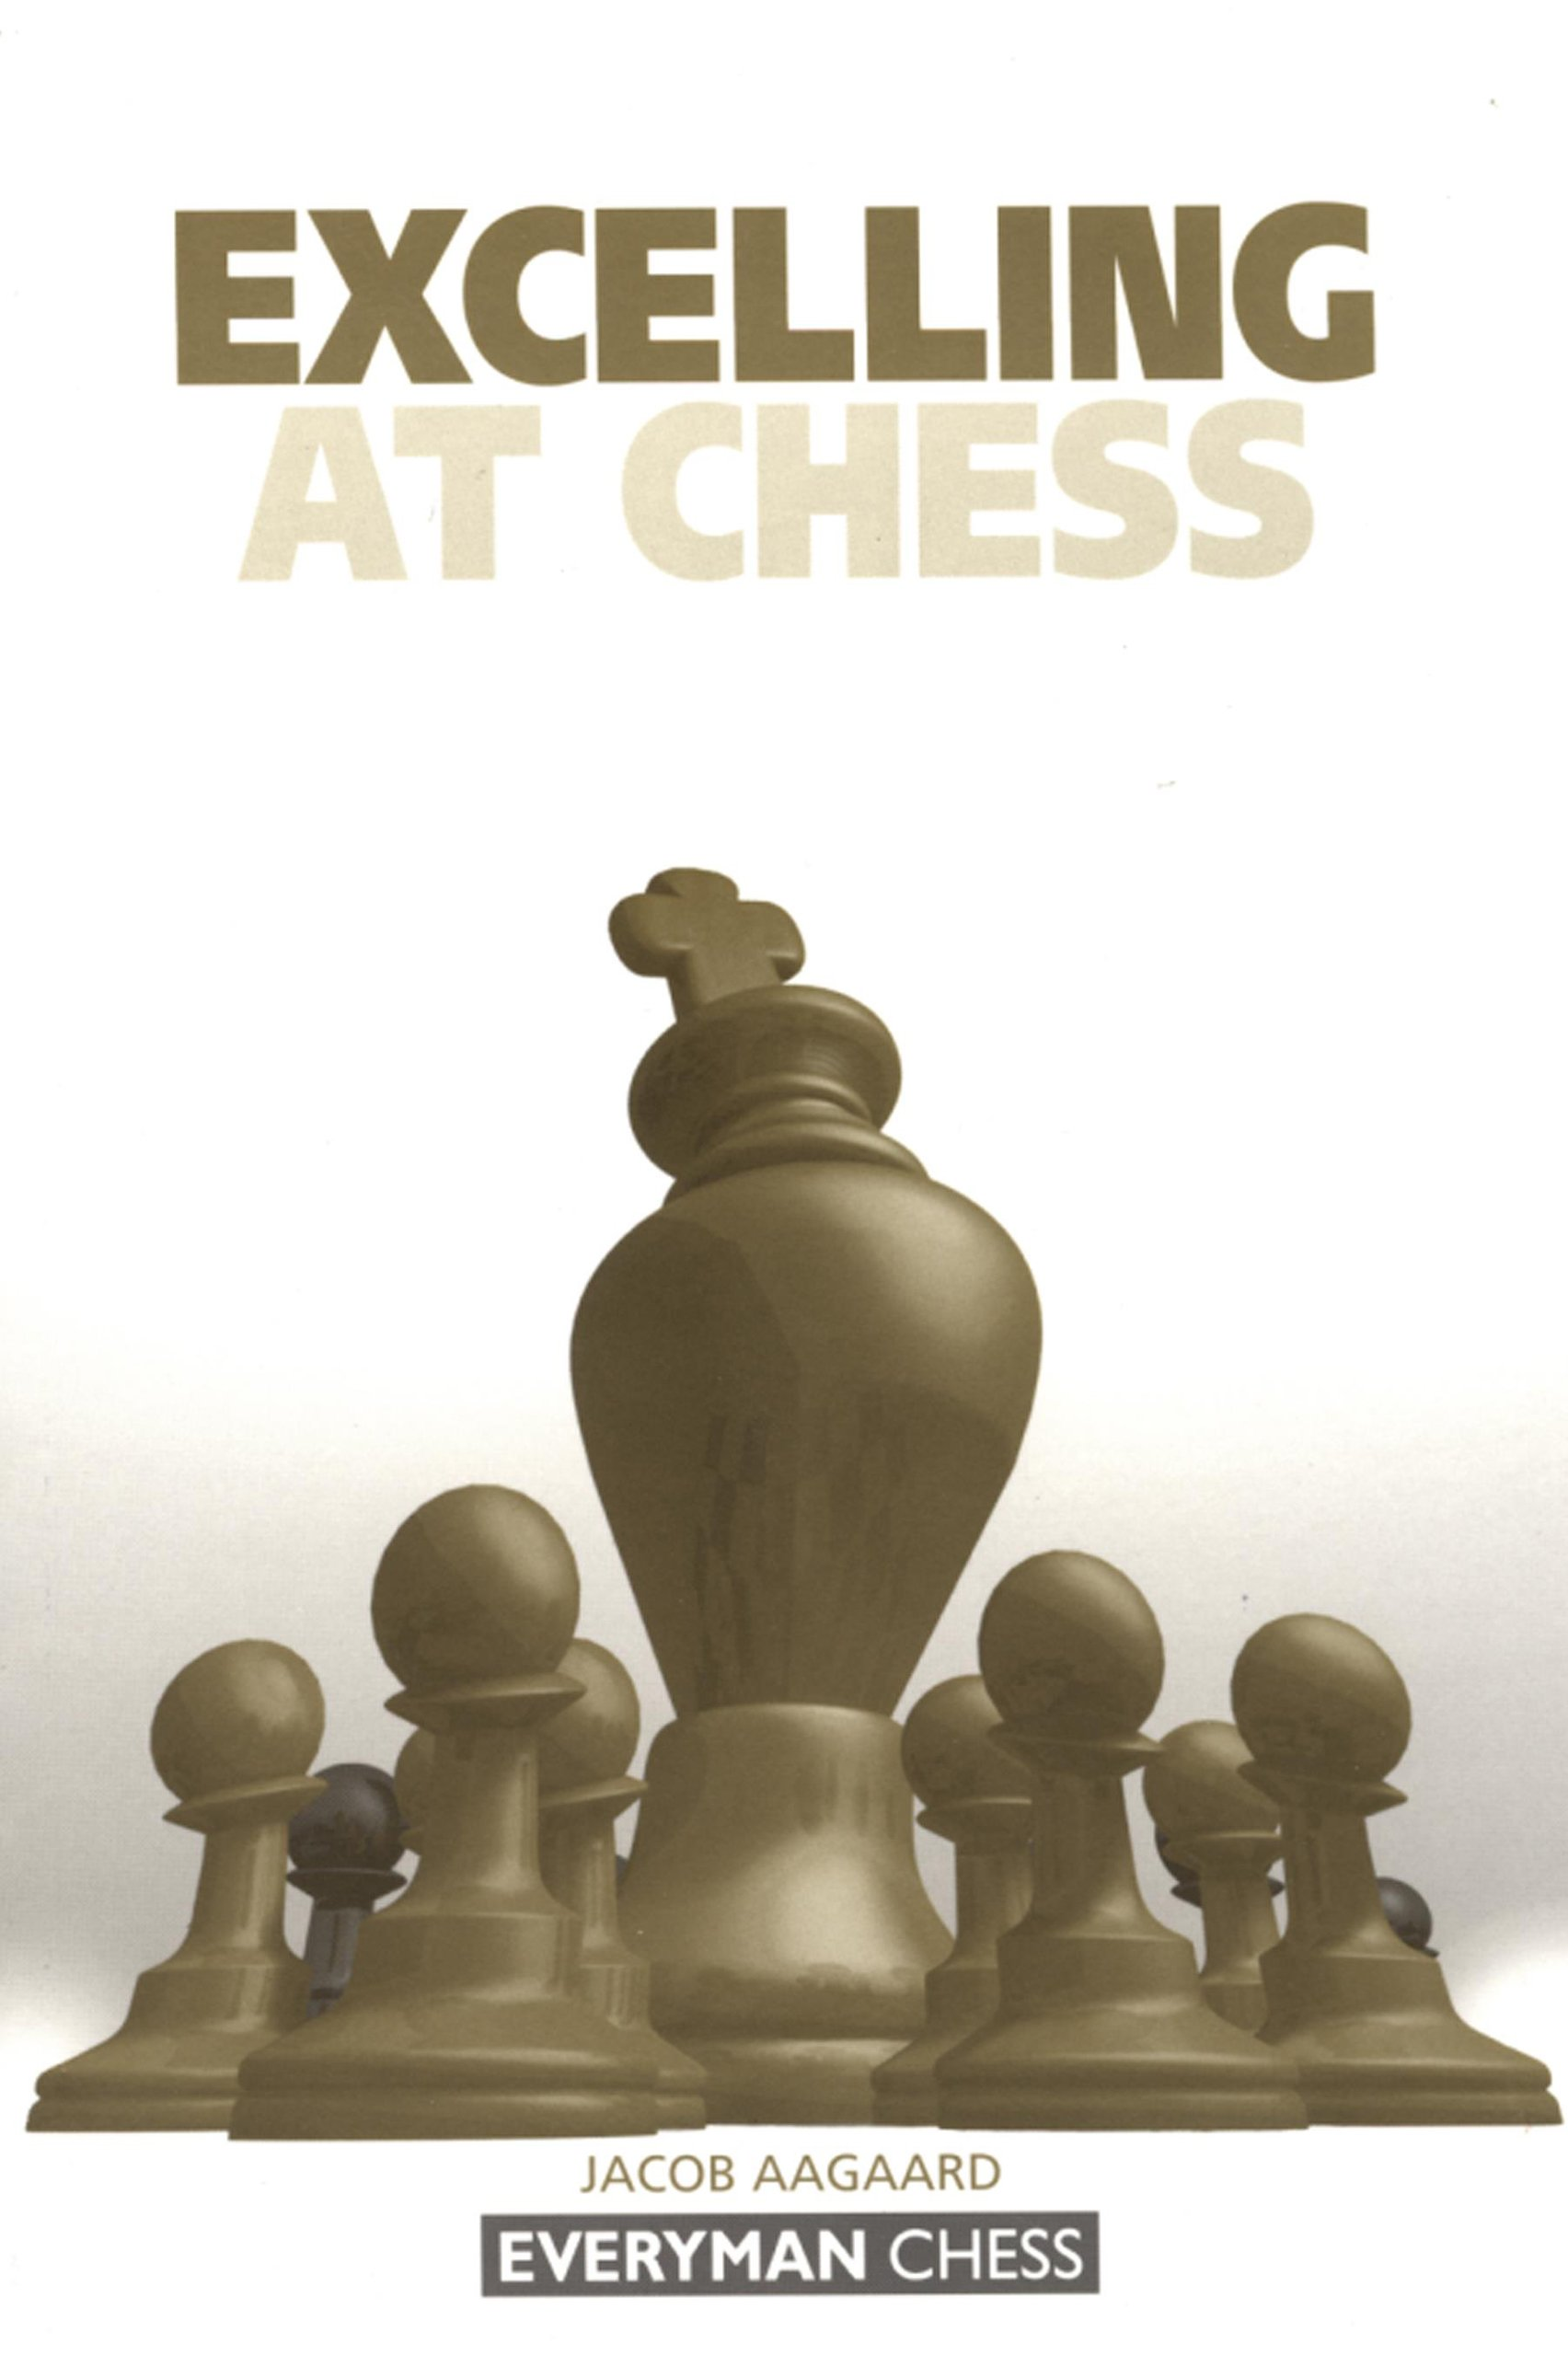 excelling at chess everyman chess jacob aagaard  excelling at chess everyman chess jacob aagaard 9781857442731 com books